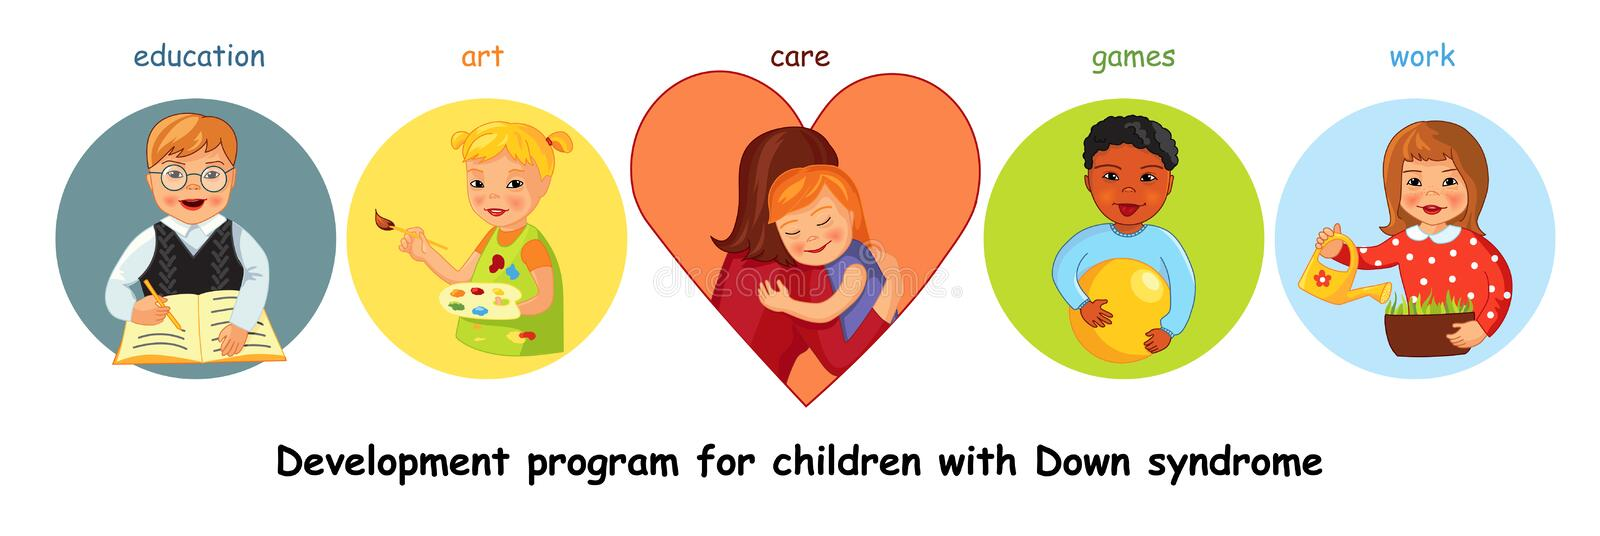 Children with Down syndrome development vector illustration